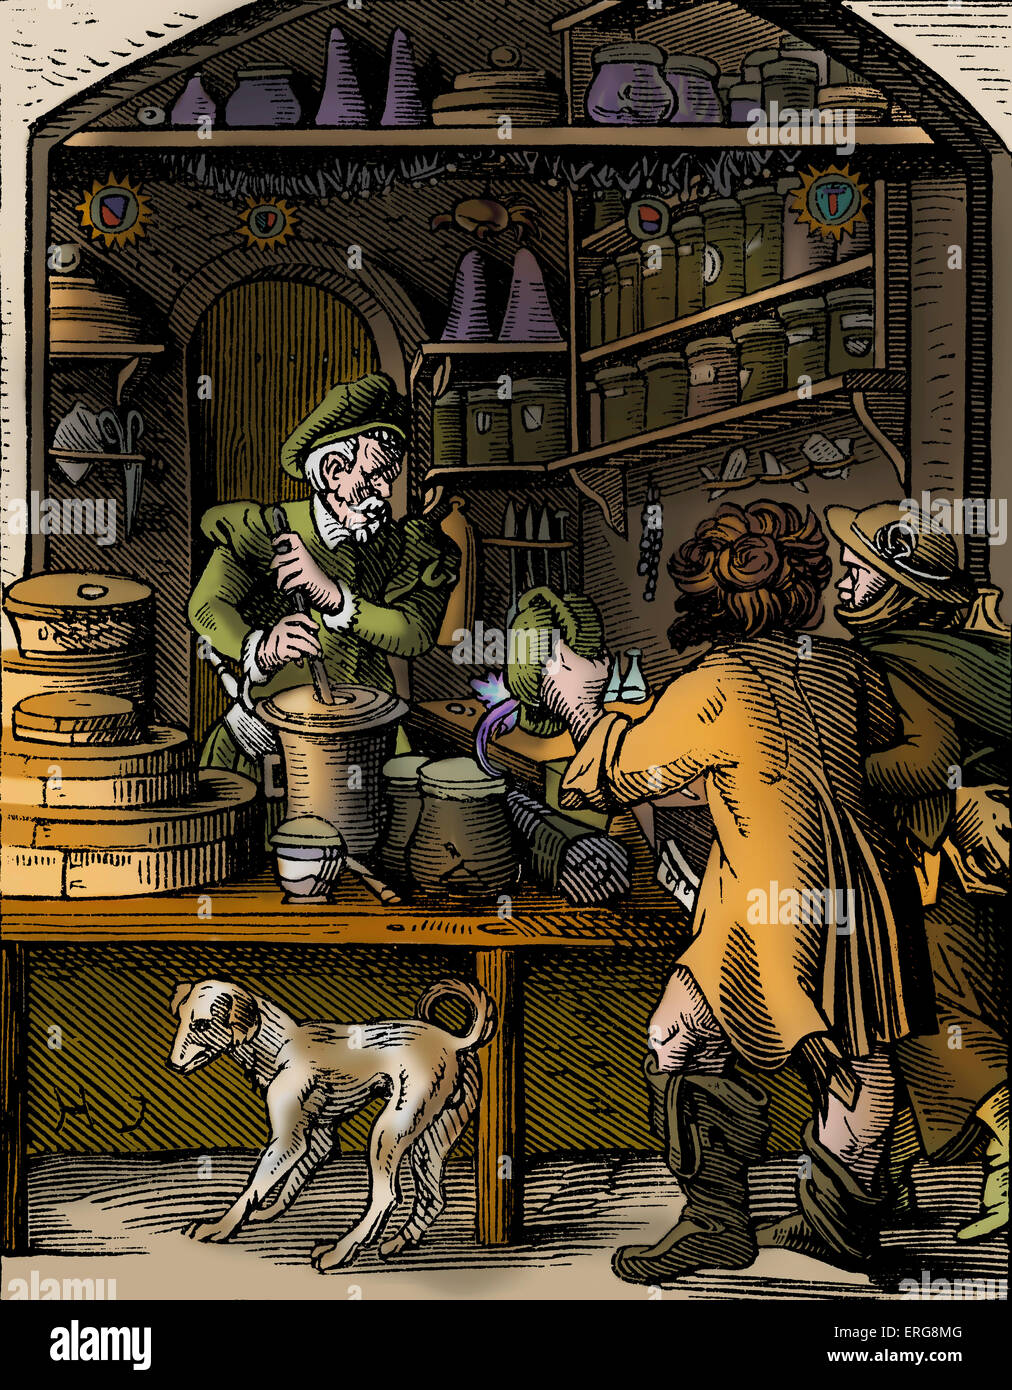 Apothecary by Jost Amman, reproduced from a sixteenth century engraving. Swiss artist, 13 June, 1539 - 17 March, Stock Photo